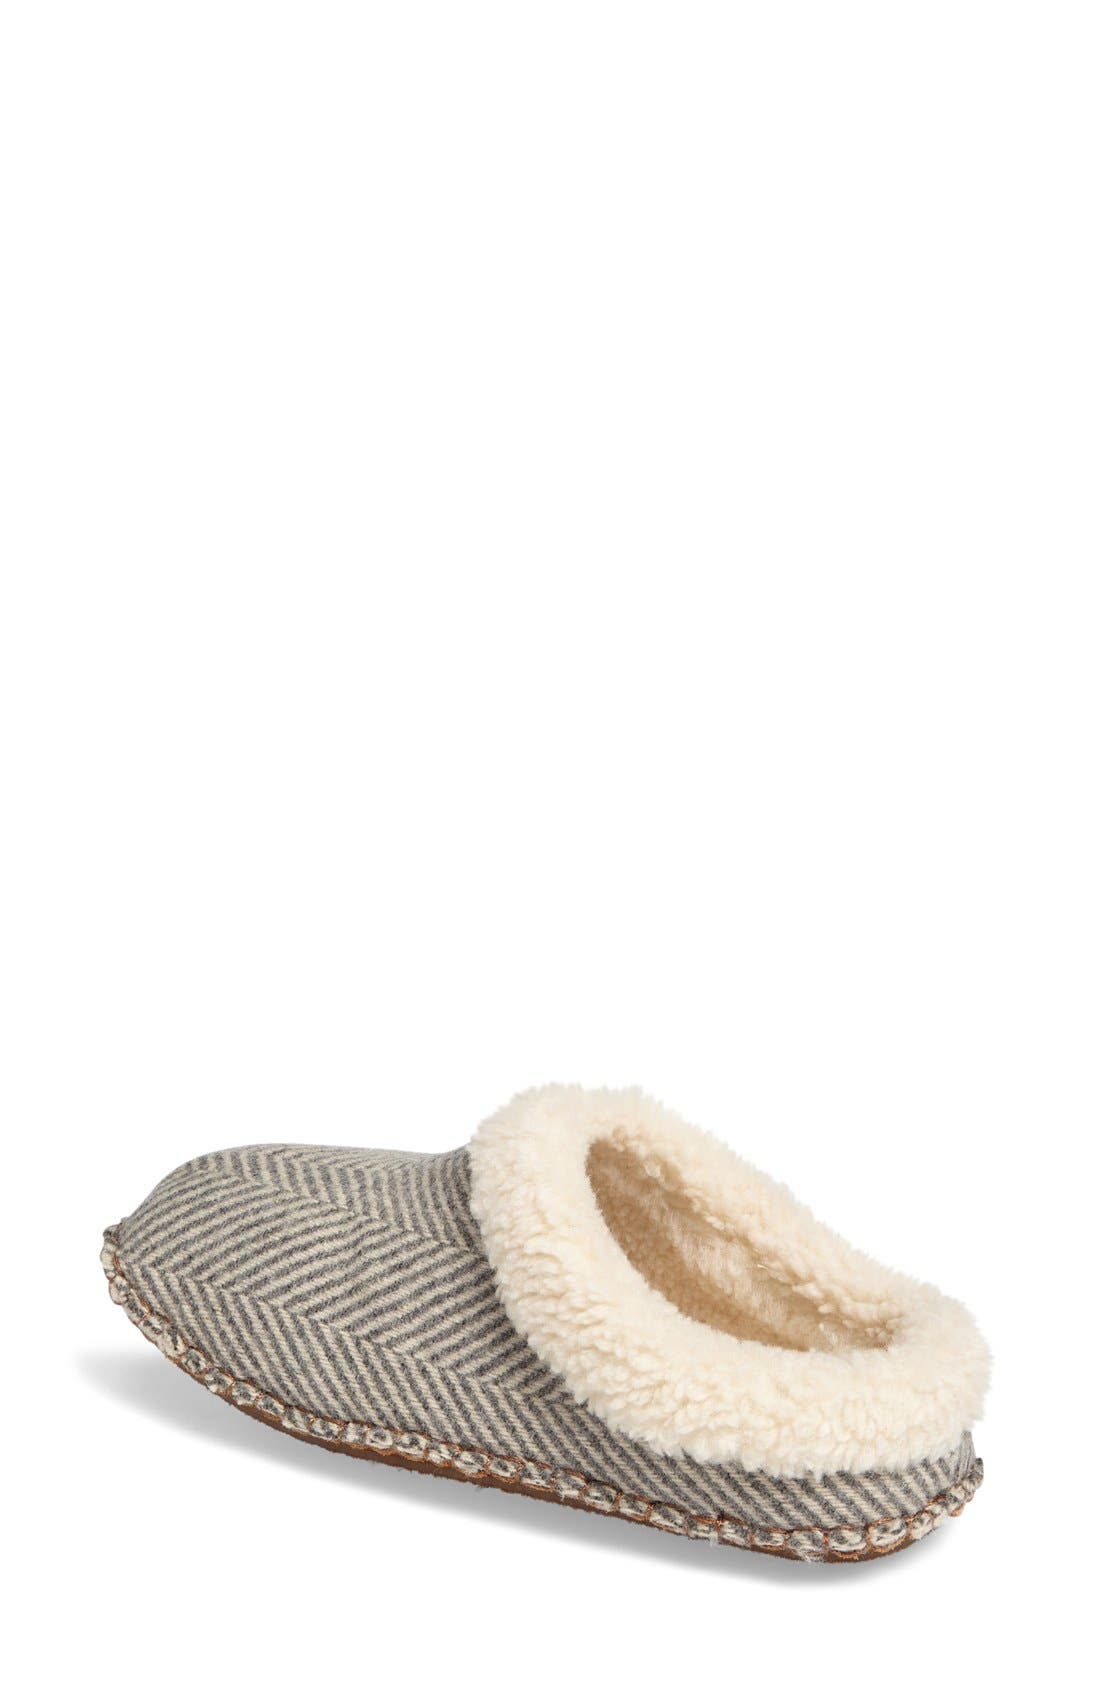 Lodge Slipper,                             Alternate thumbnail 2, color,                             Herringbone Wool